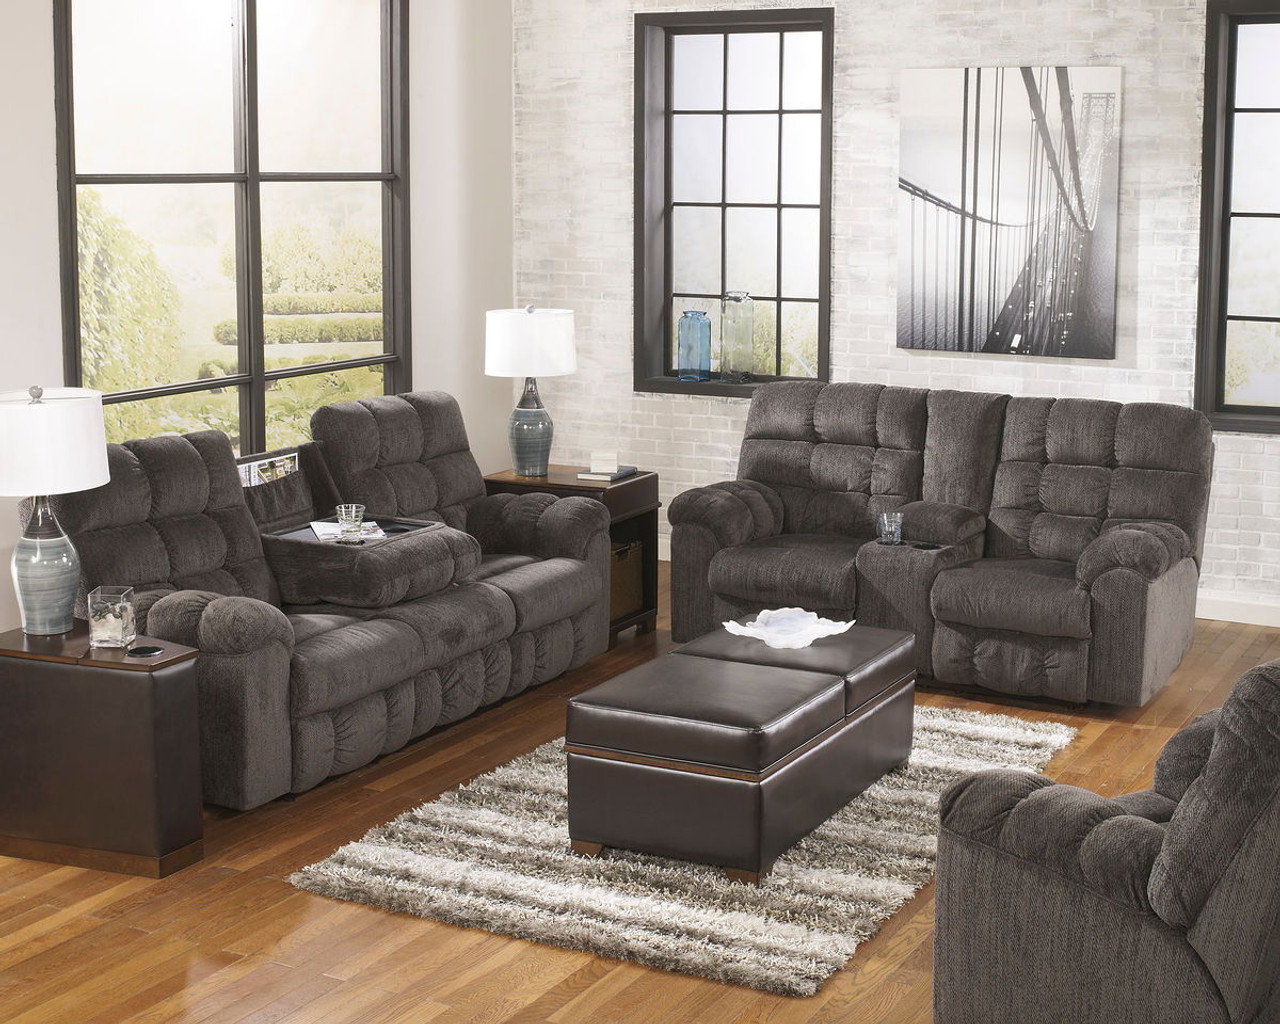 Enjoyable Acieona Slate 3 Pc Reclining Sofa With Drop Down Table Double Rec Loveseat With Console Swivel Rocker Recliner Machost Co Dining Chair Design Ideas Machostcouk